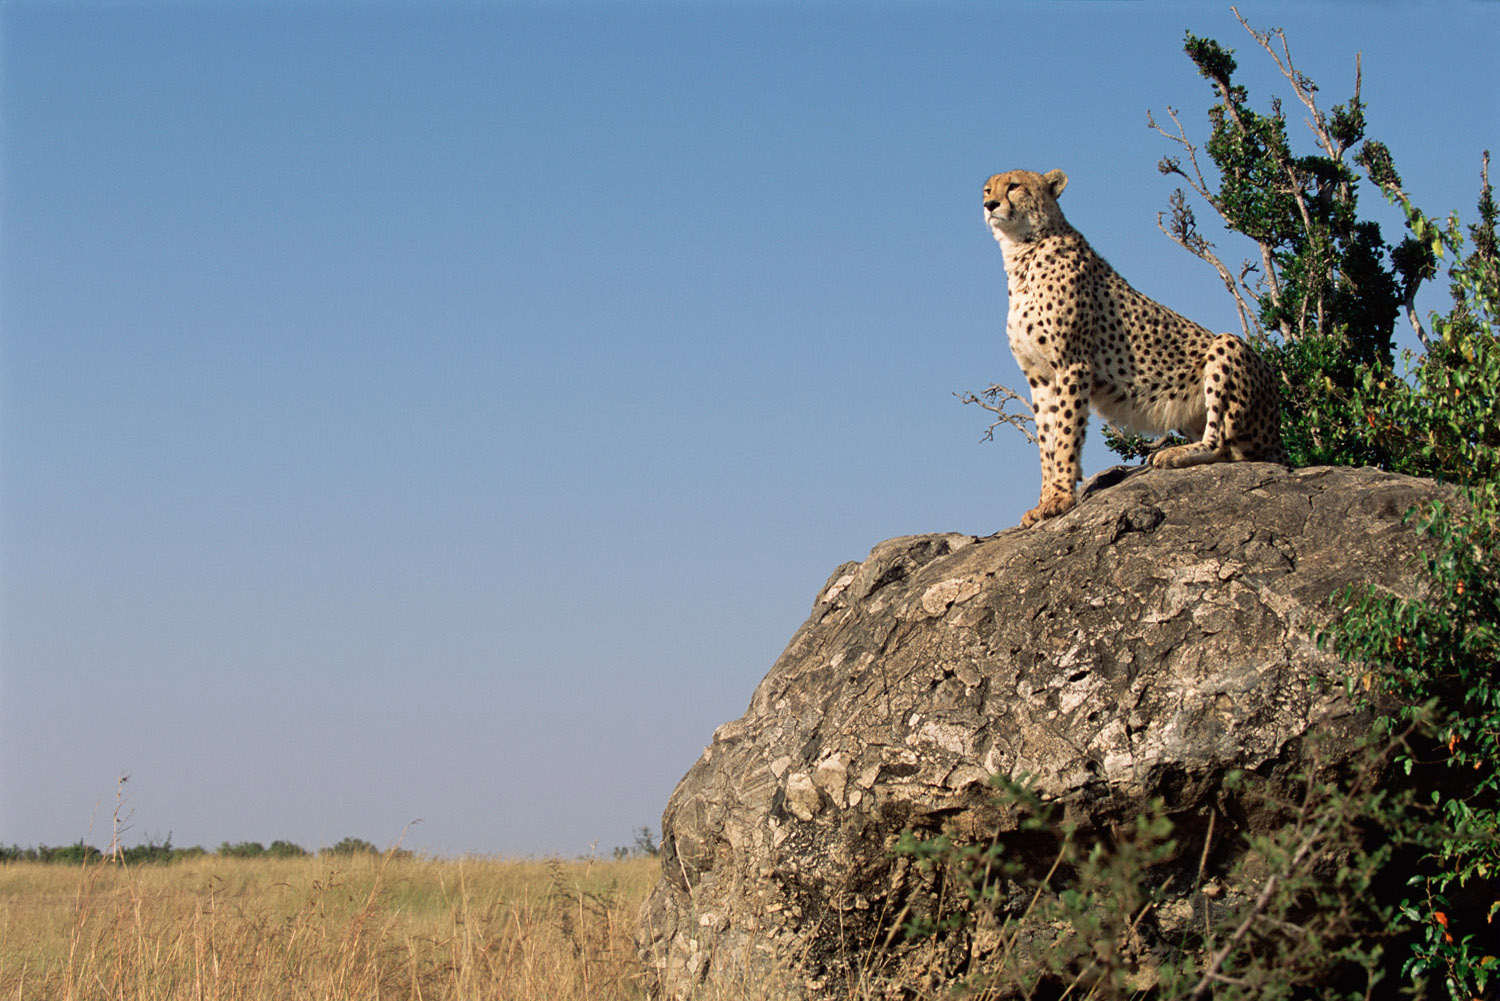 Cheetah on look-out for prey, Masai Mara National Reserve, Kenya